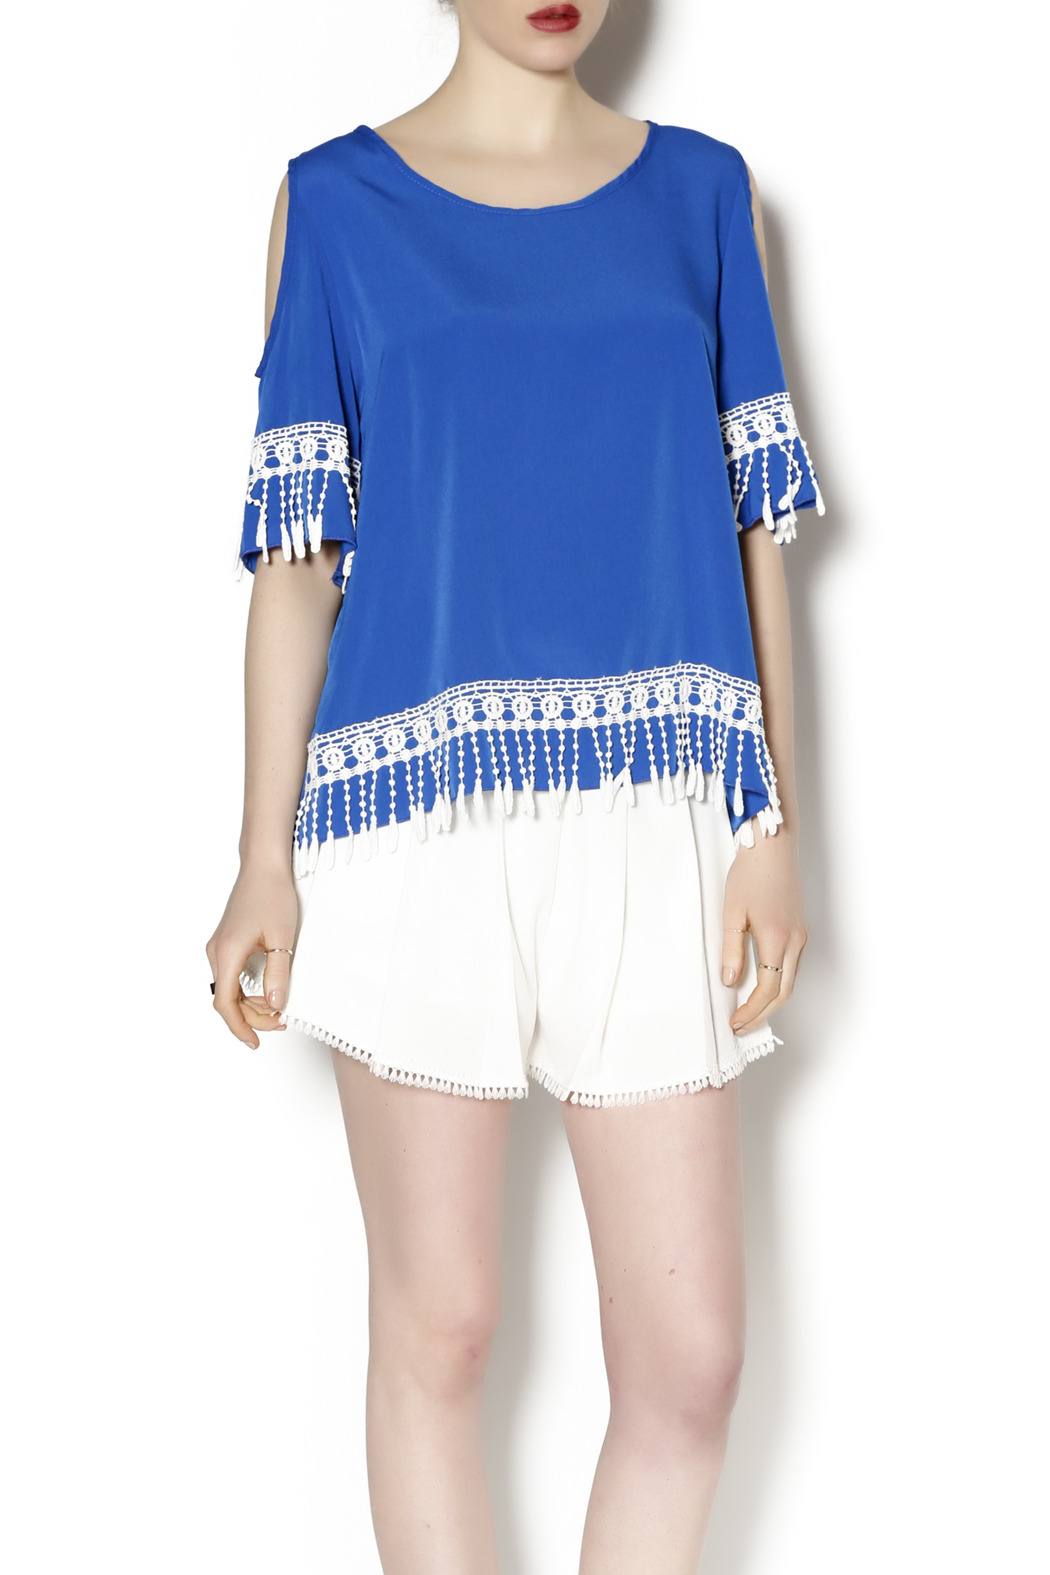 Abby & Taylor Blue Crochet Trim Tunic - Front Cropped Image